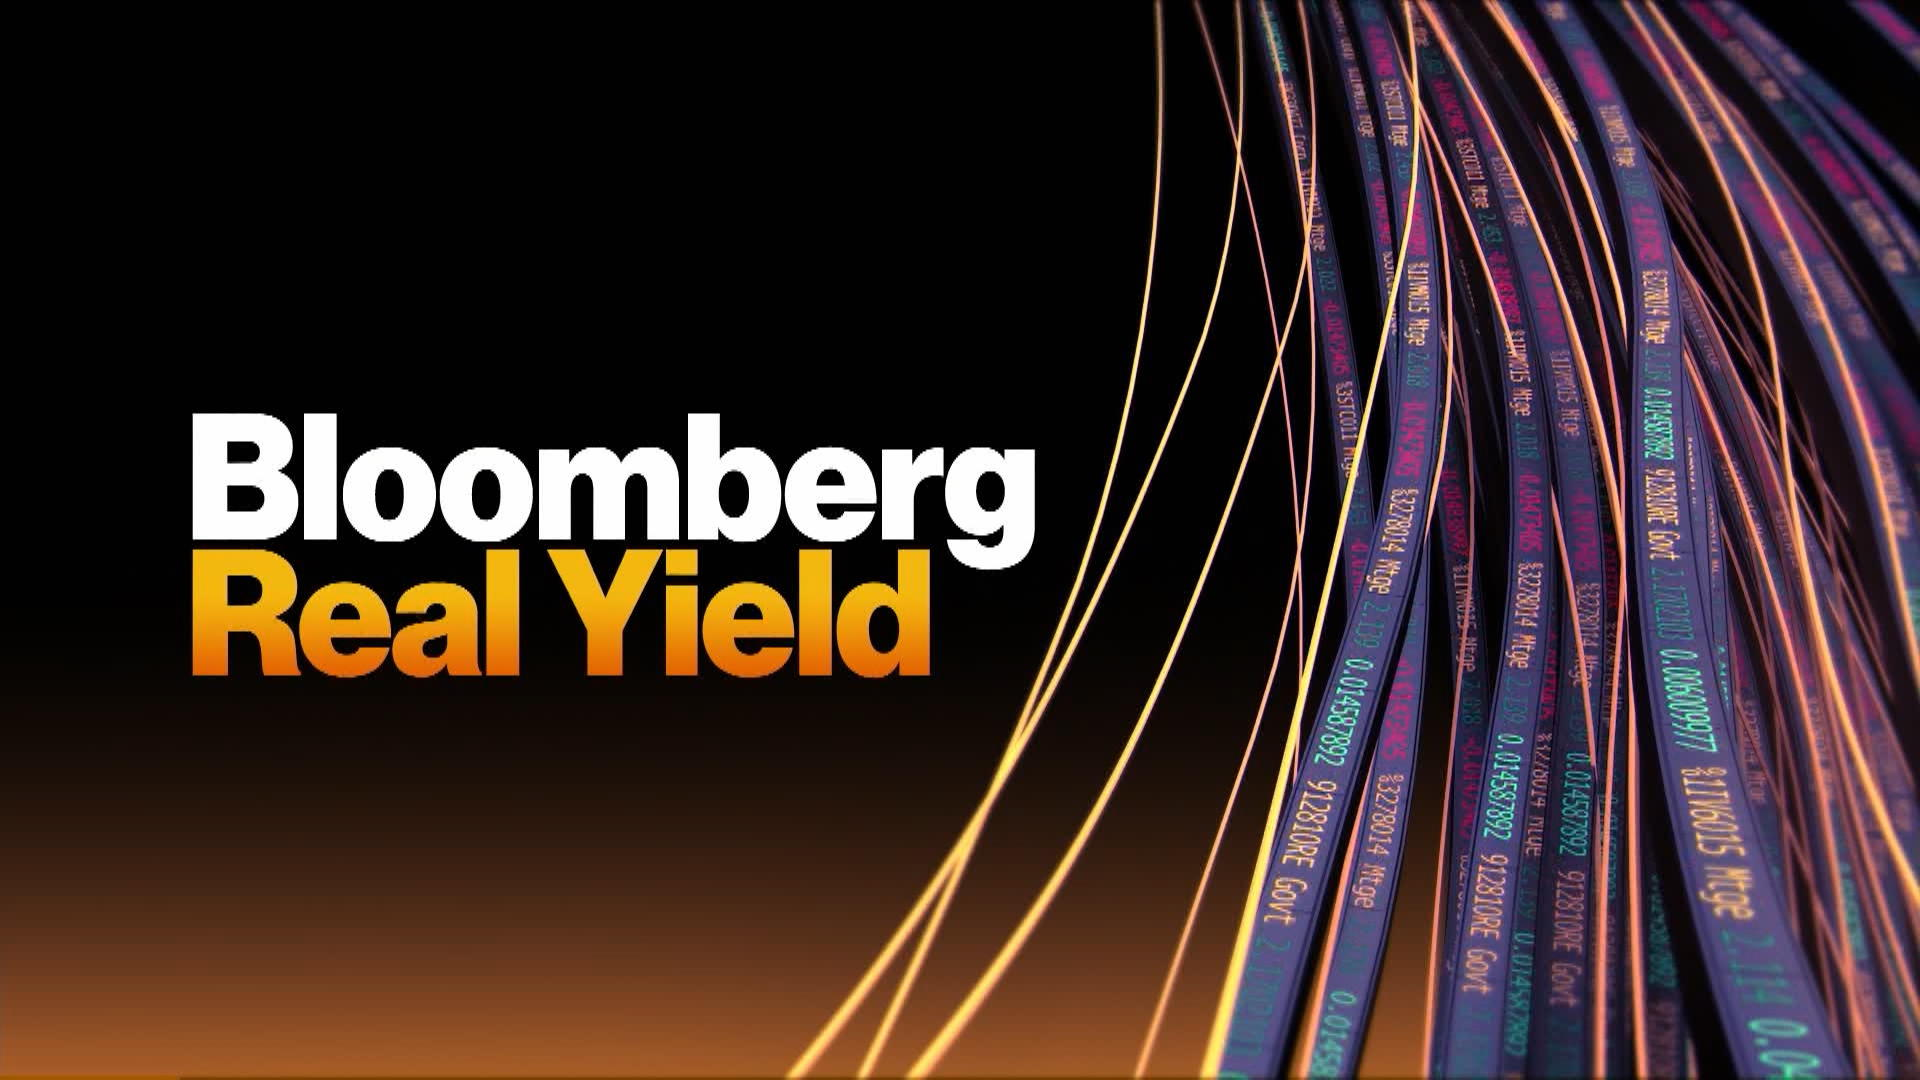 'Bloomberg Real Yield' Full Show (01/18/2019)